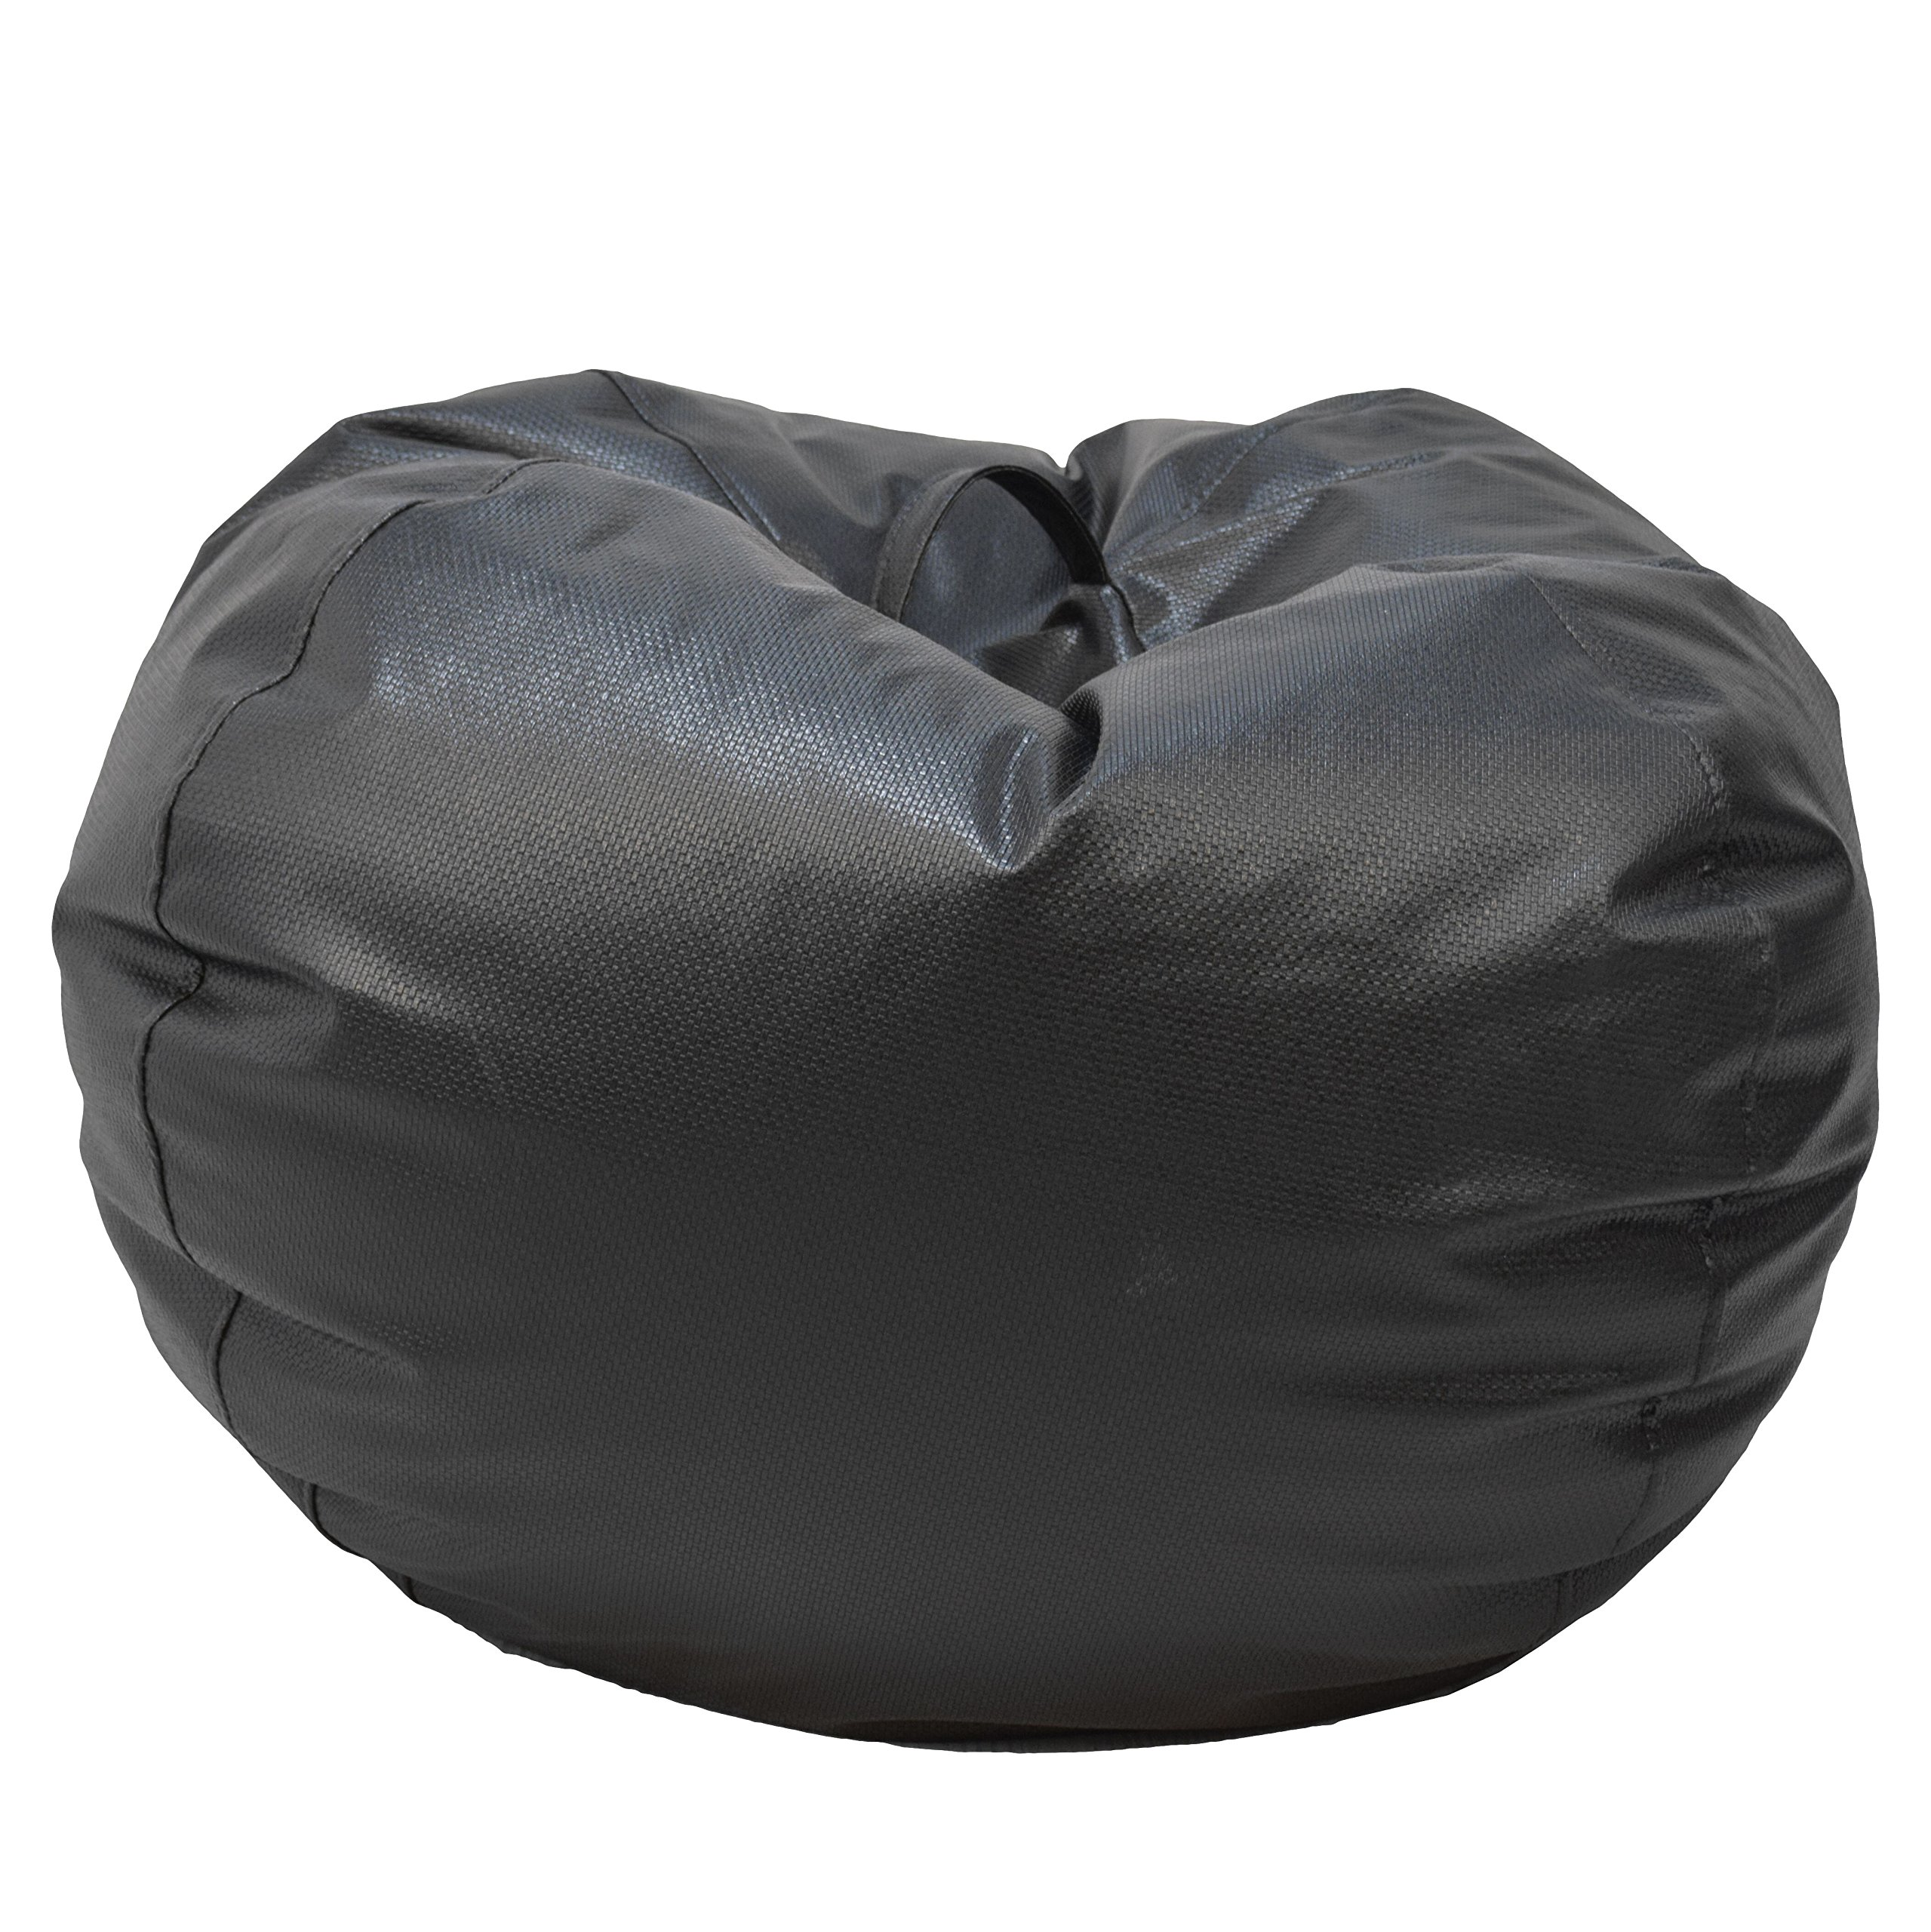 Ace Casual 1082001 Casual Basket weave Round Bean Bag Chair, Jumbo, Black